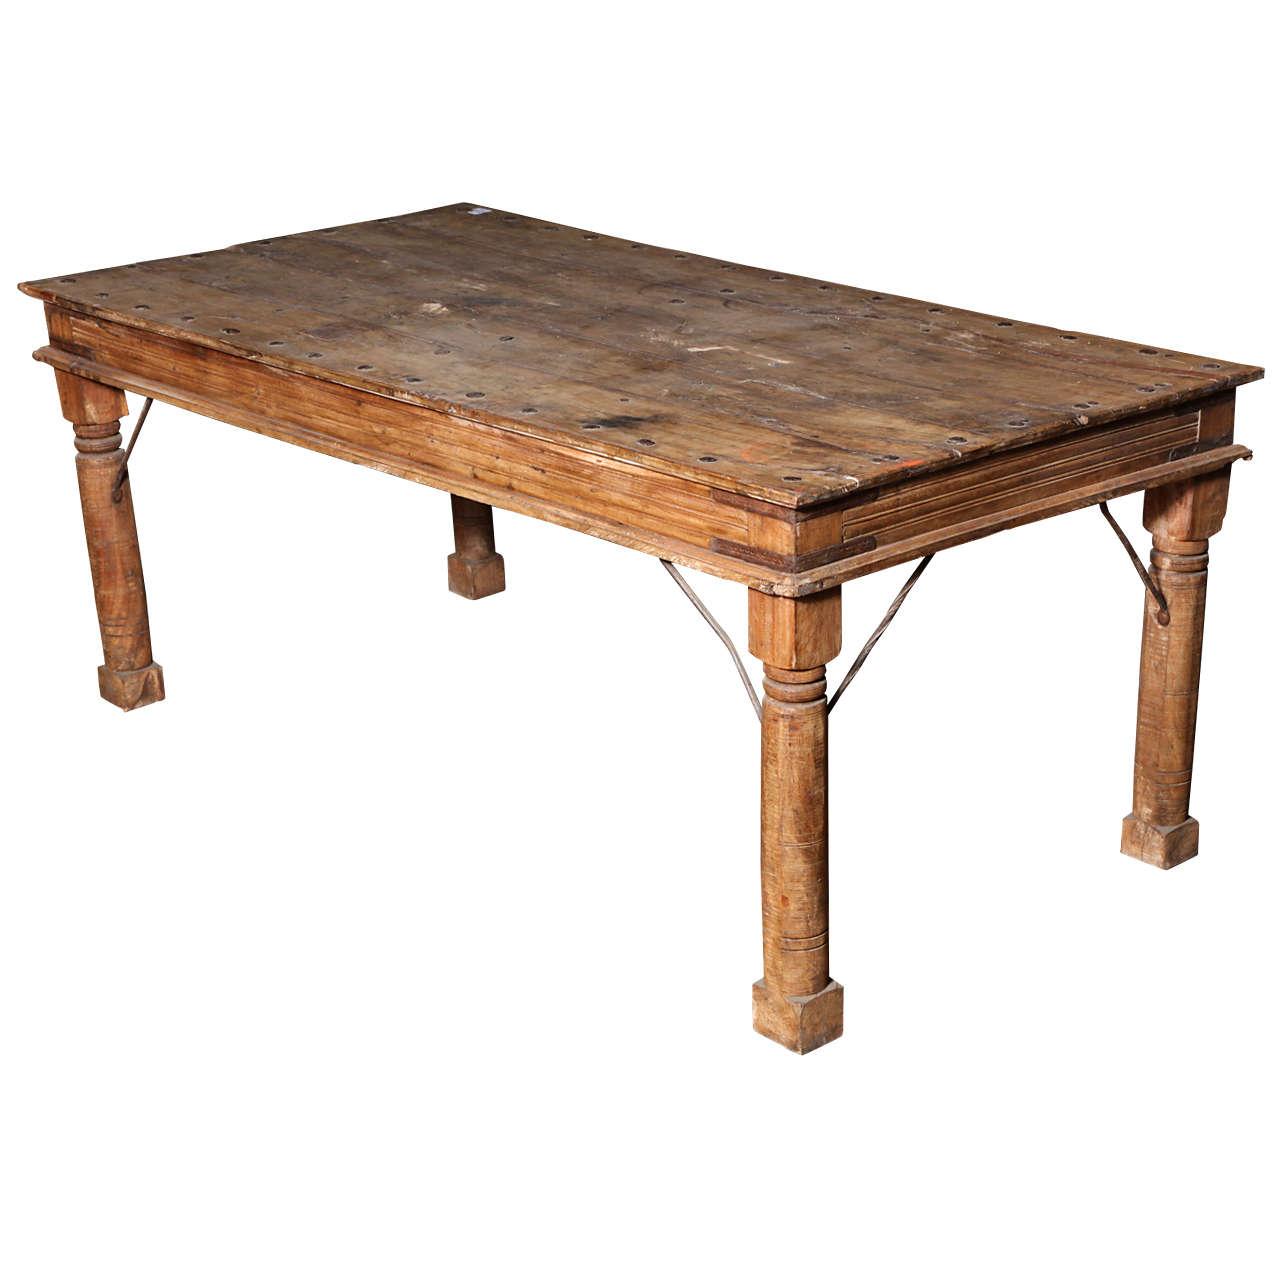 Indian shesham wood bed or dining table for sale at 1stdibs - India dining table ...